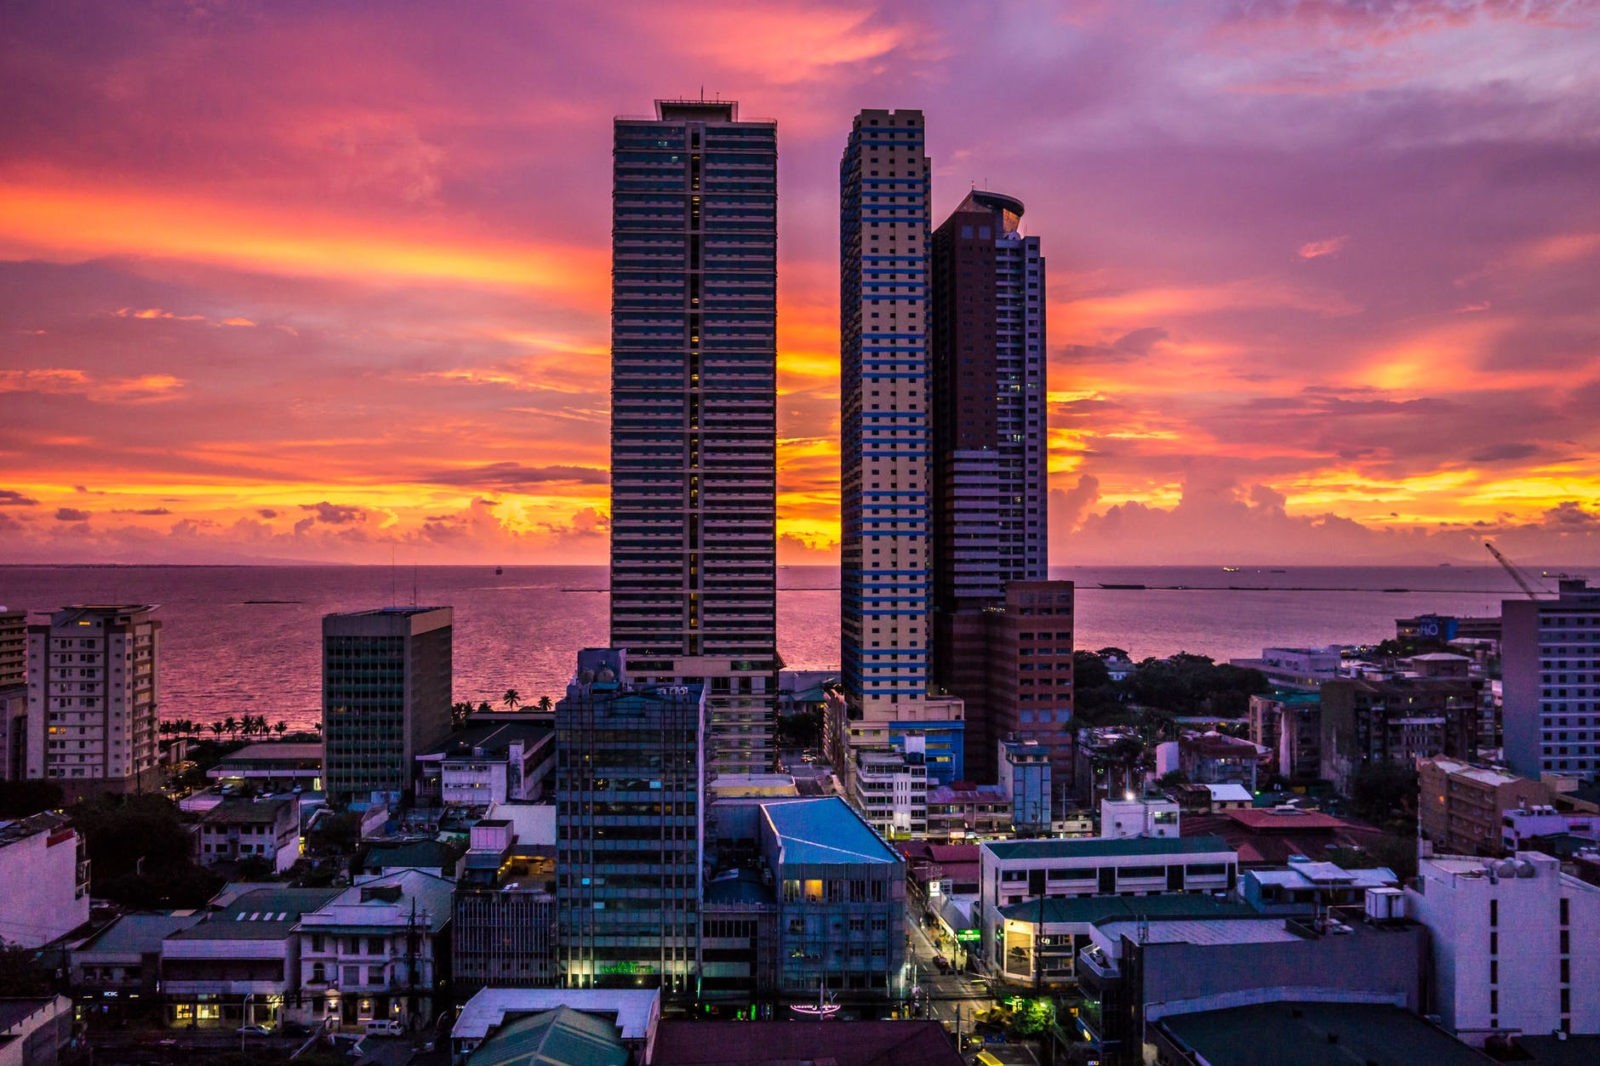 Hotel Deal For Manila Philippines #manilaphilippines #weekend